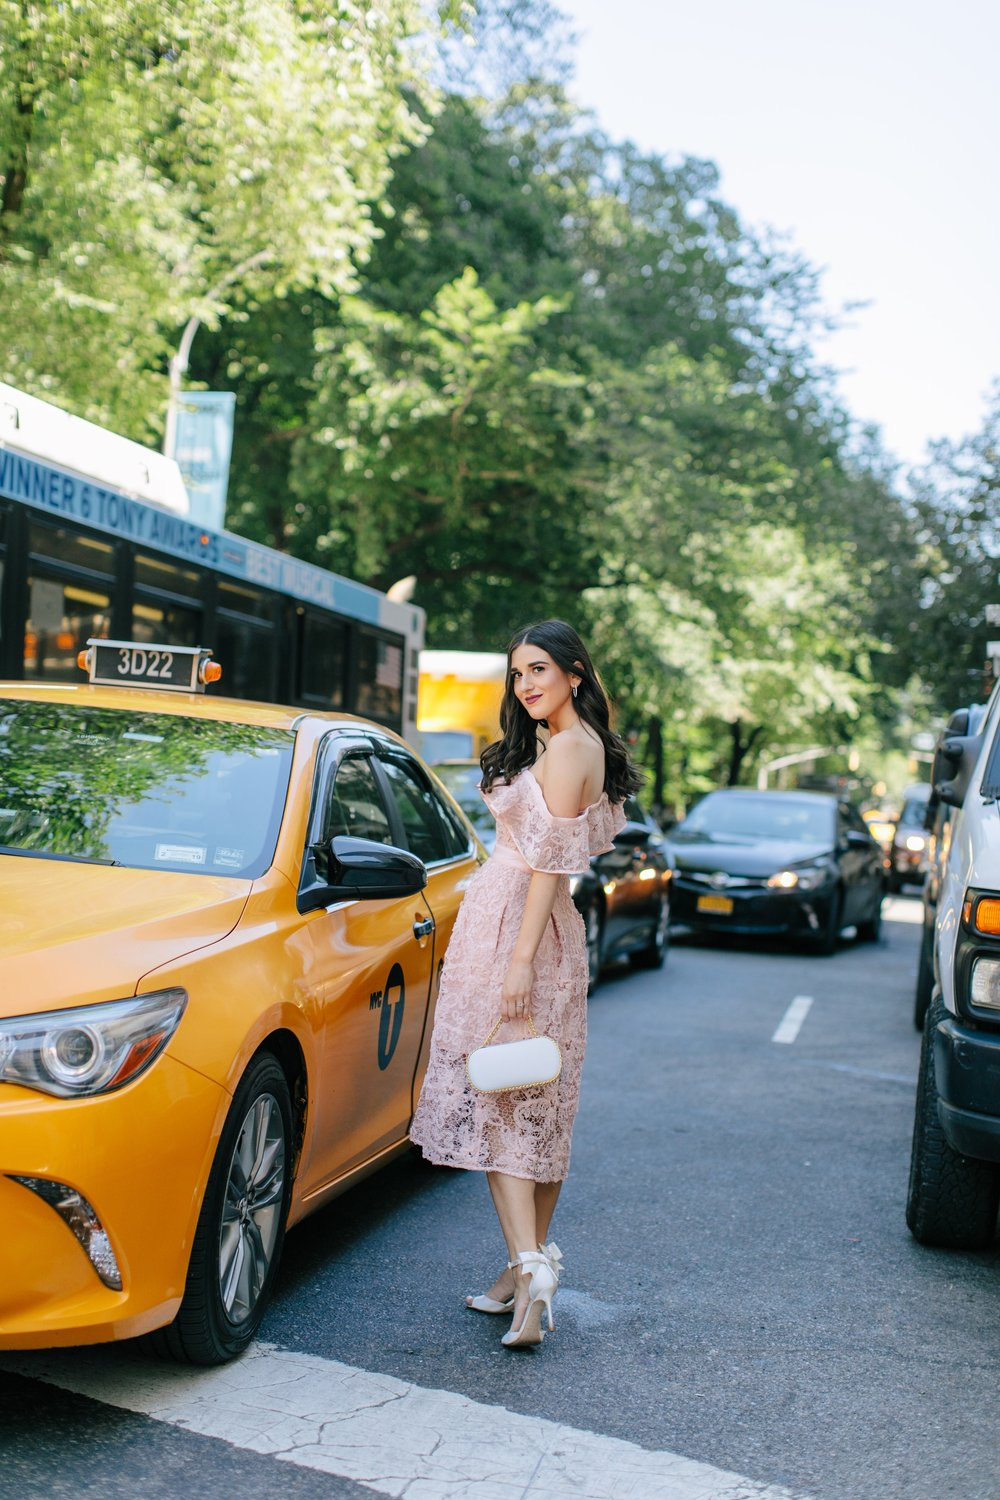 A New Perspective On Instagram Jealousy Pink Lace Dress Ivory Bow Heels Esther Santer Fashion Blog NYC Street Style Blogger Outfit OOTD Trendy Formal White Bag Clutch Self Portrait Designer Kate Spade Wedding Shoes Fancy Elegant Feminine Shopping Wear.jpg